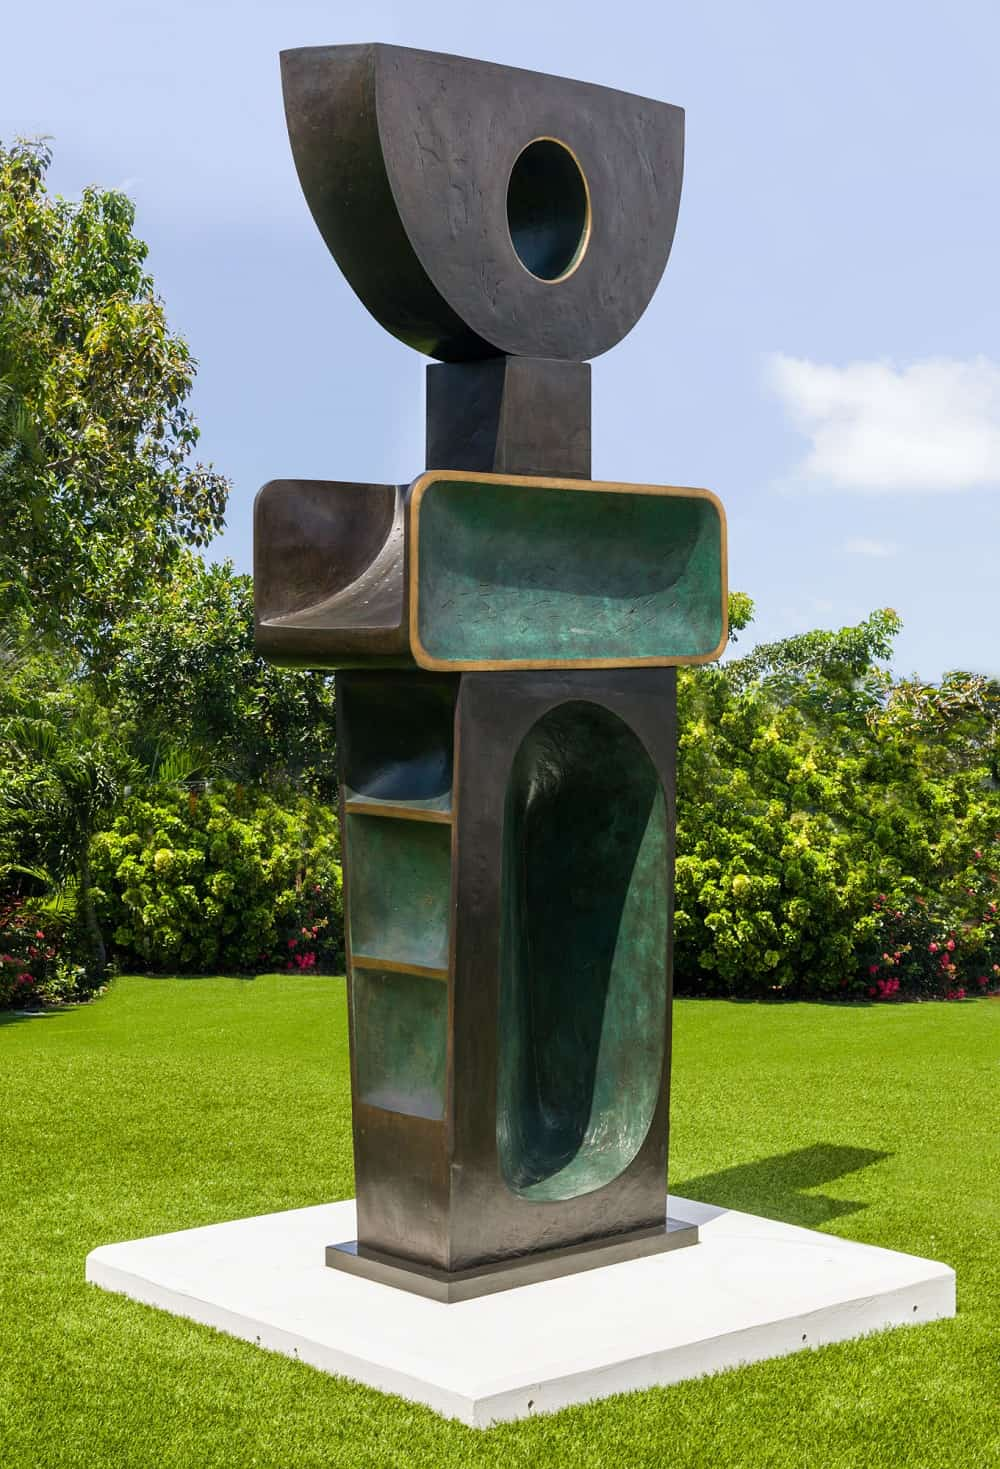 Dame Barbara Hepworth (1903-1975), The Family Of Man (Ultimate Form)